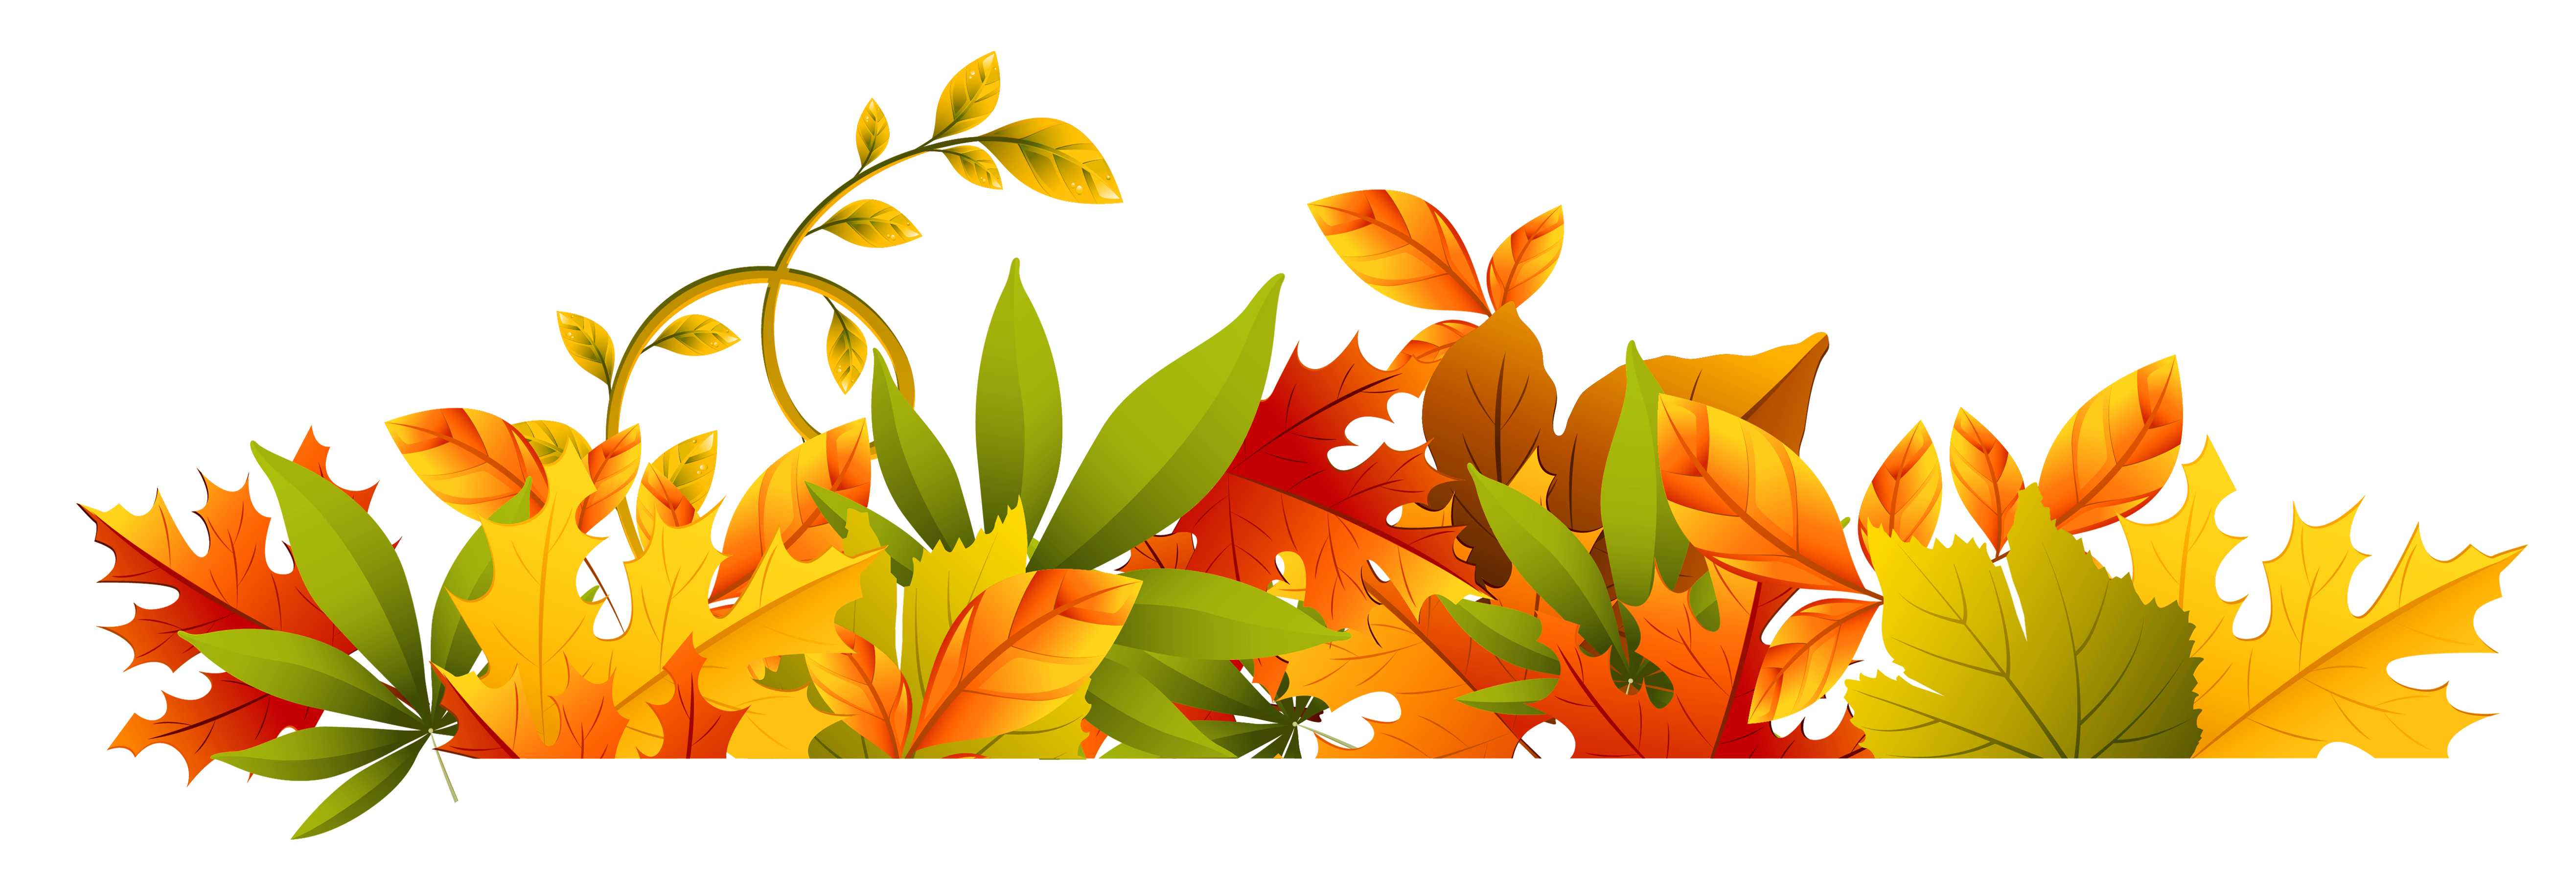 5264x1796 Transparent Autumn Border Png Clipartu200b Gallery Yopriceville